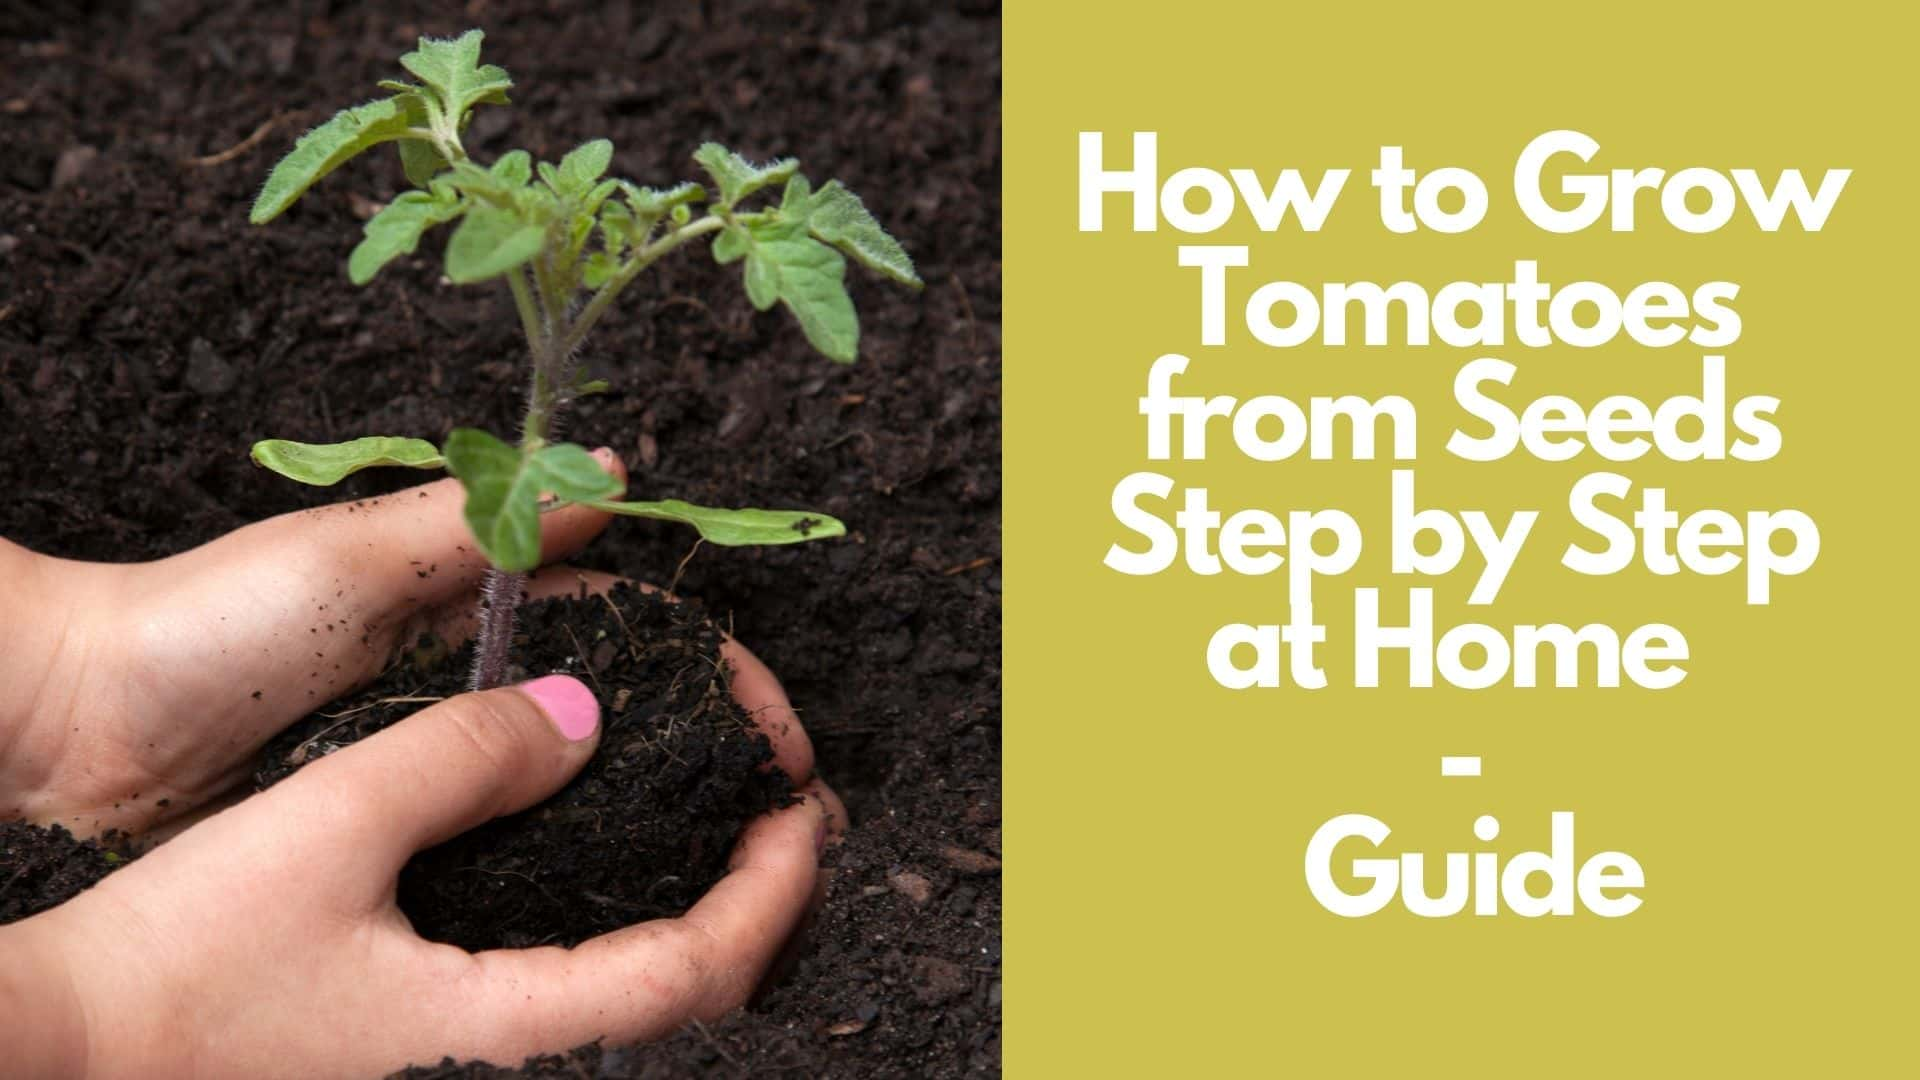 How to Grow Tomatoes from Seeds Step by Step at Home  Guide